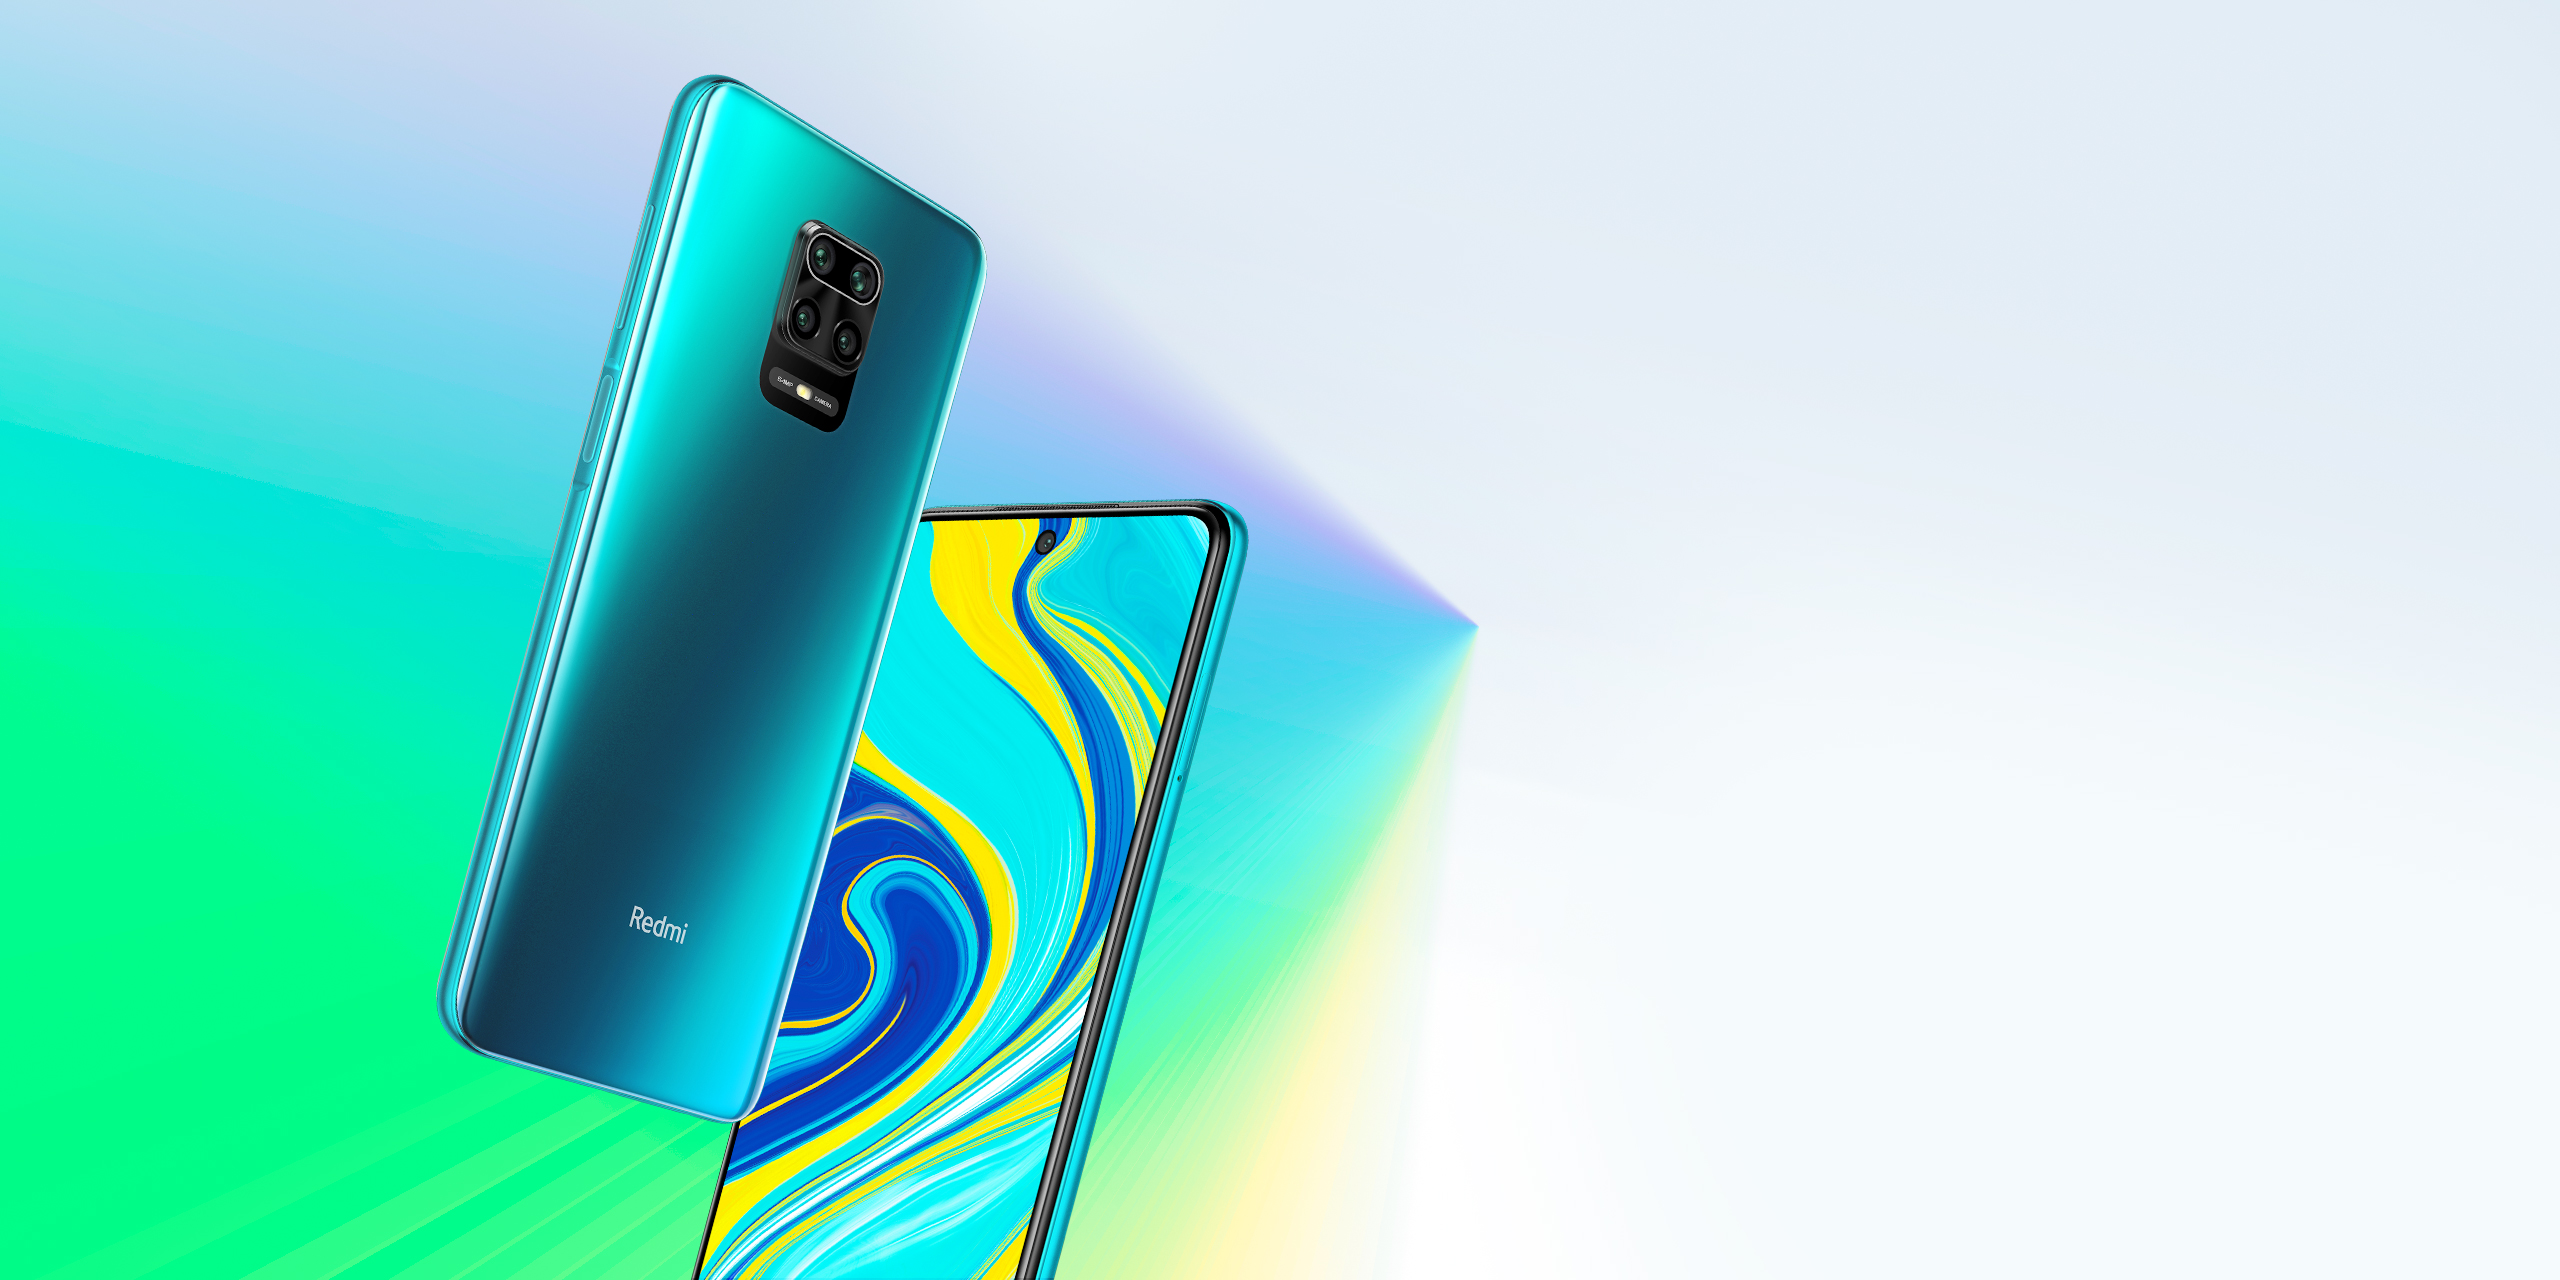 Redmi Note 9S Specifications, Price in India